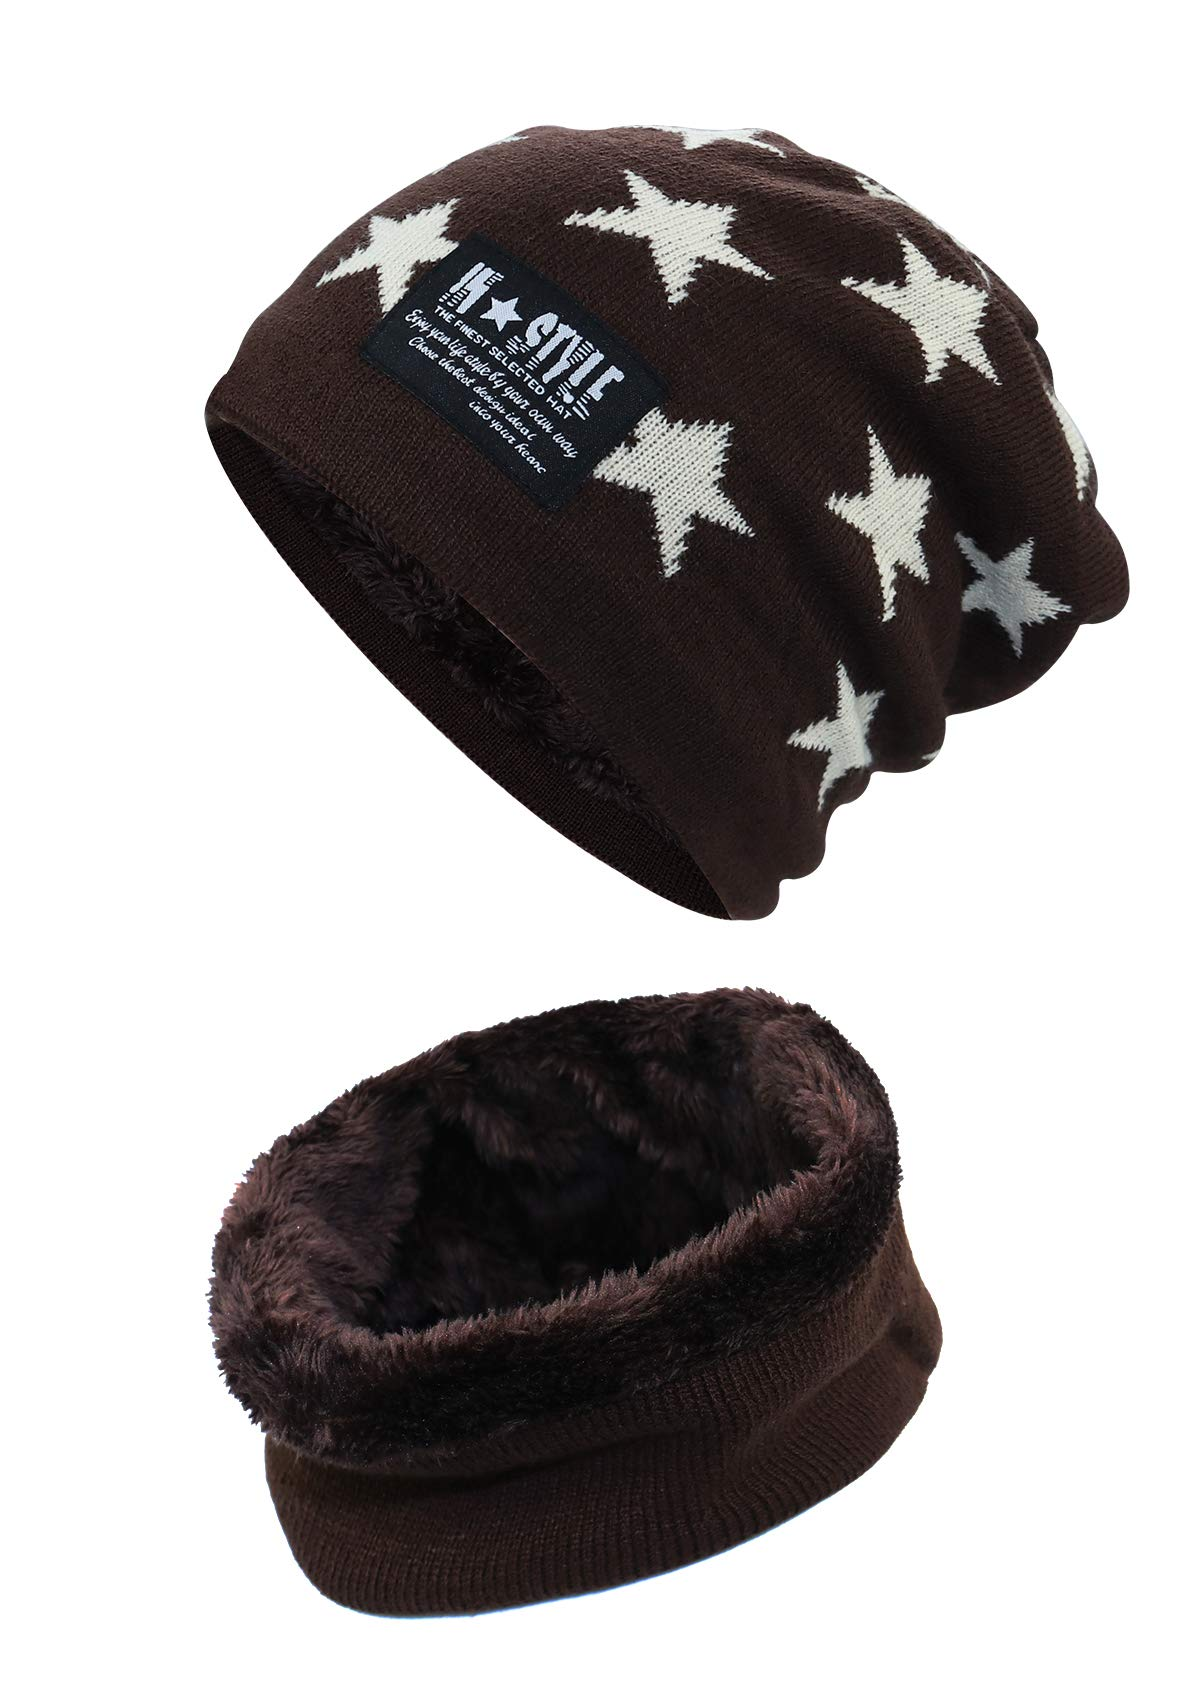 ab7c3b11454 Lover Kids Winter Warm Hat and Scarf Knitted Hat with Soft Fleece Lined  Beanie